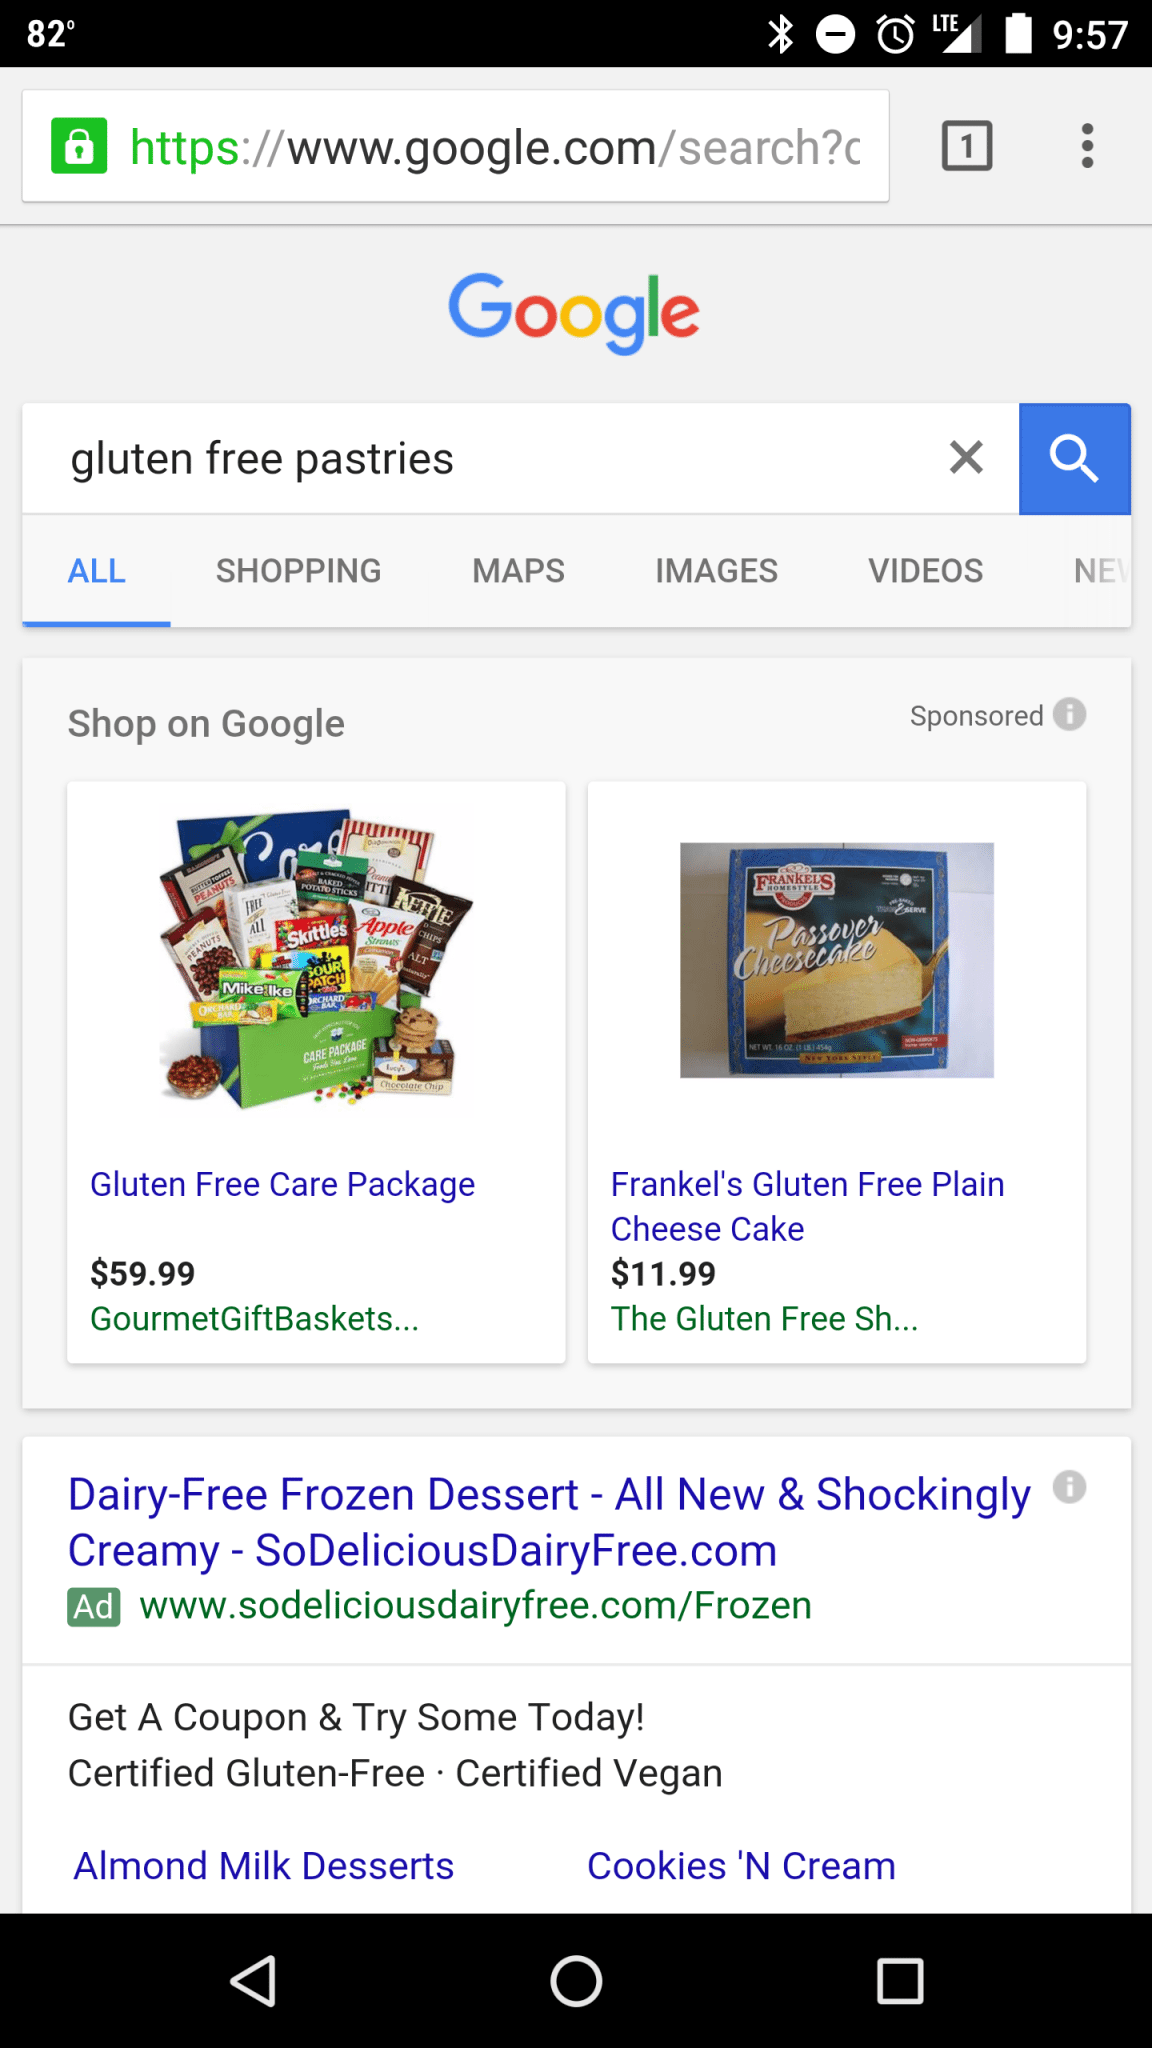 gluten free pastries search